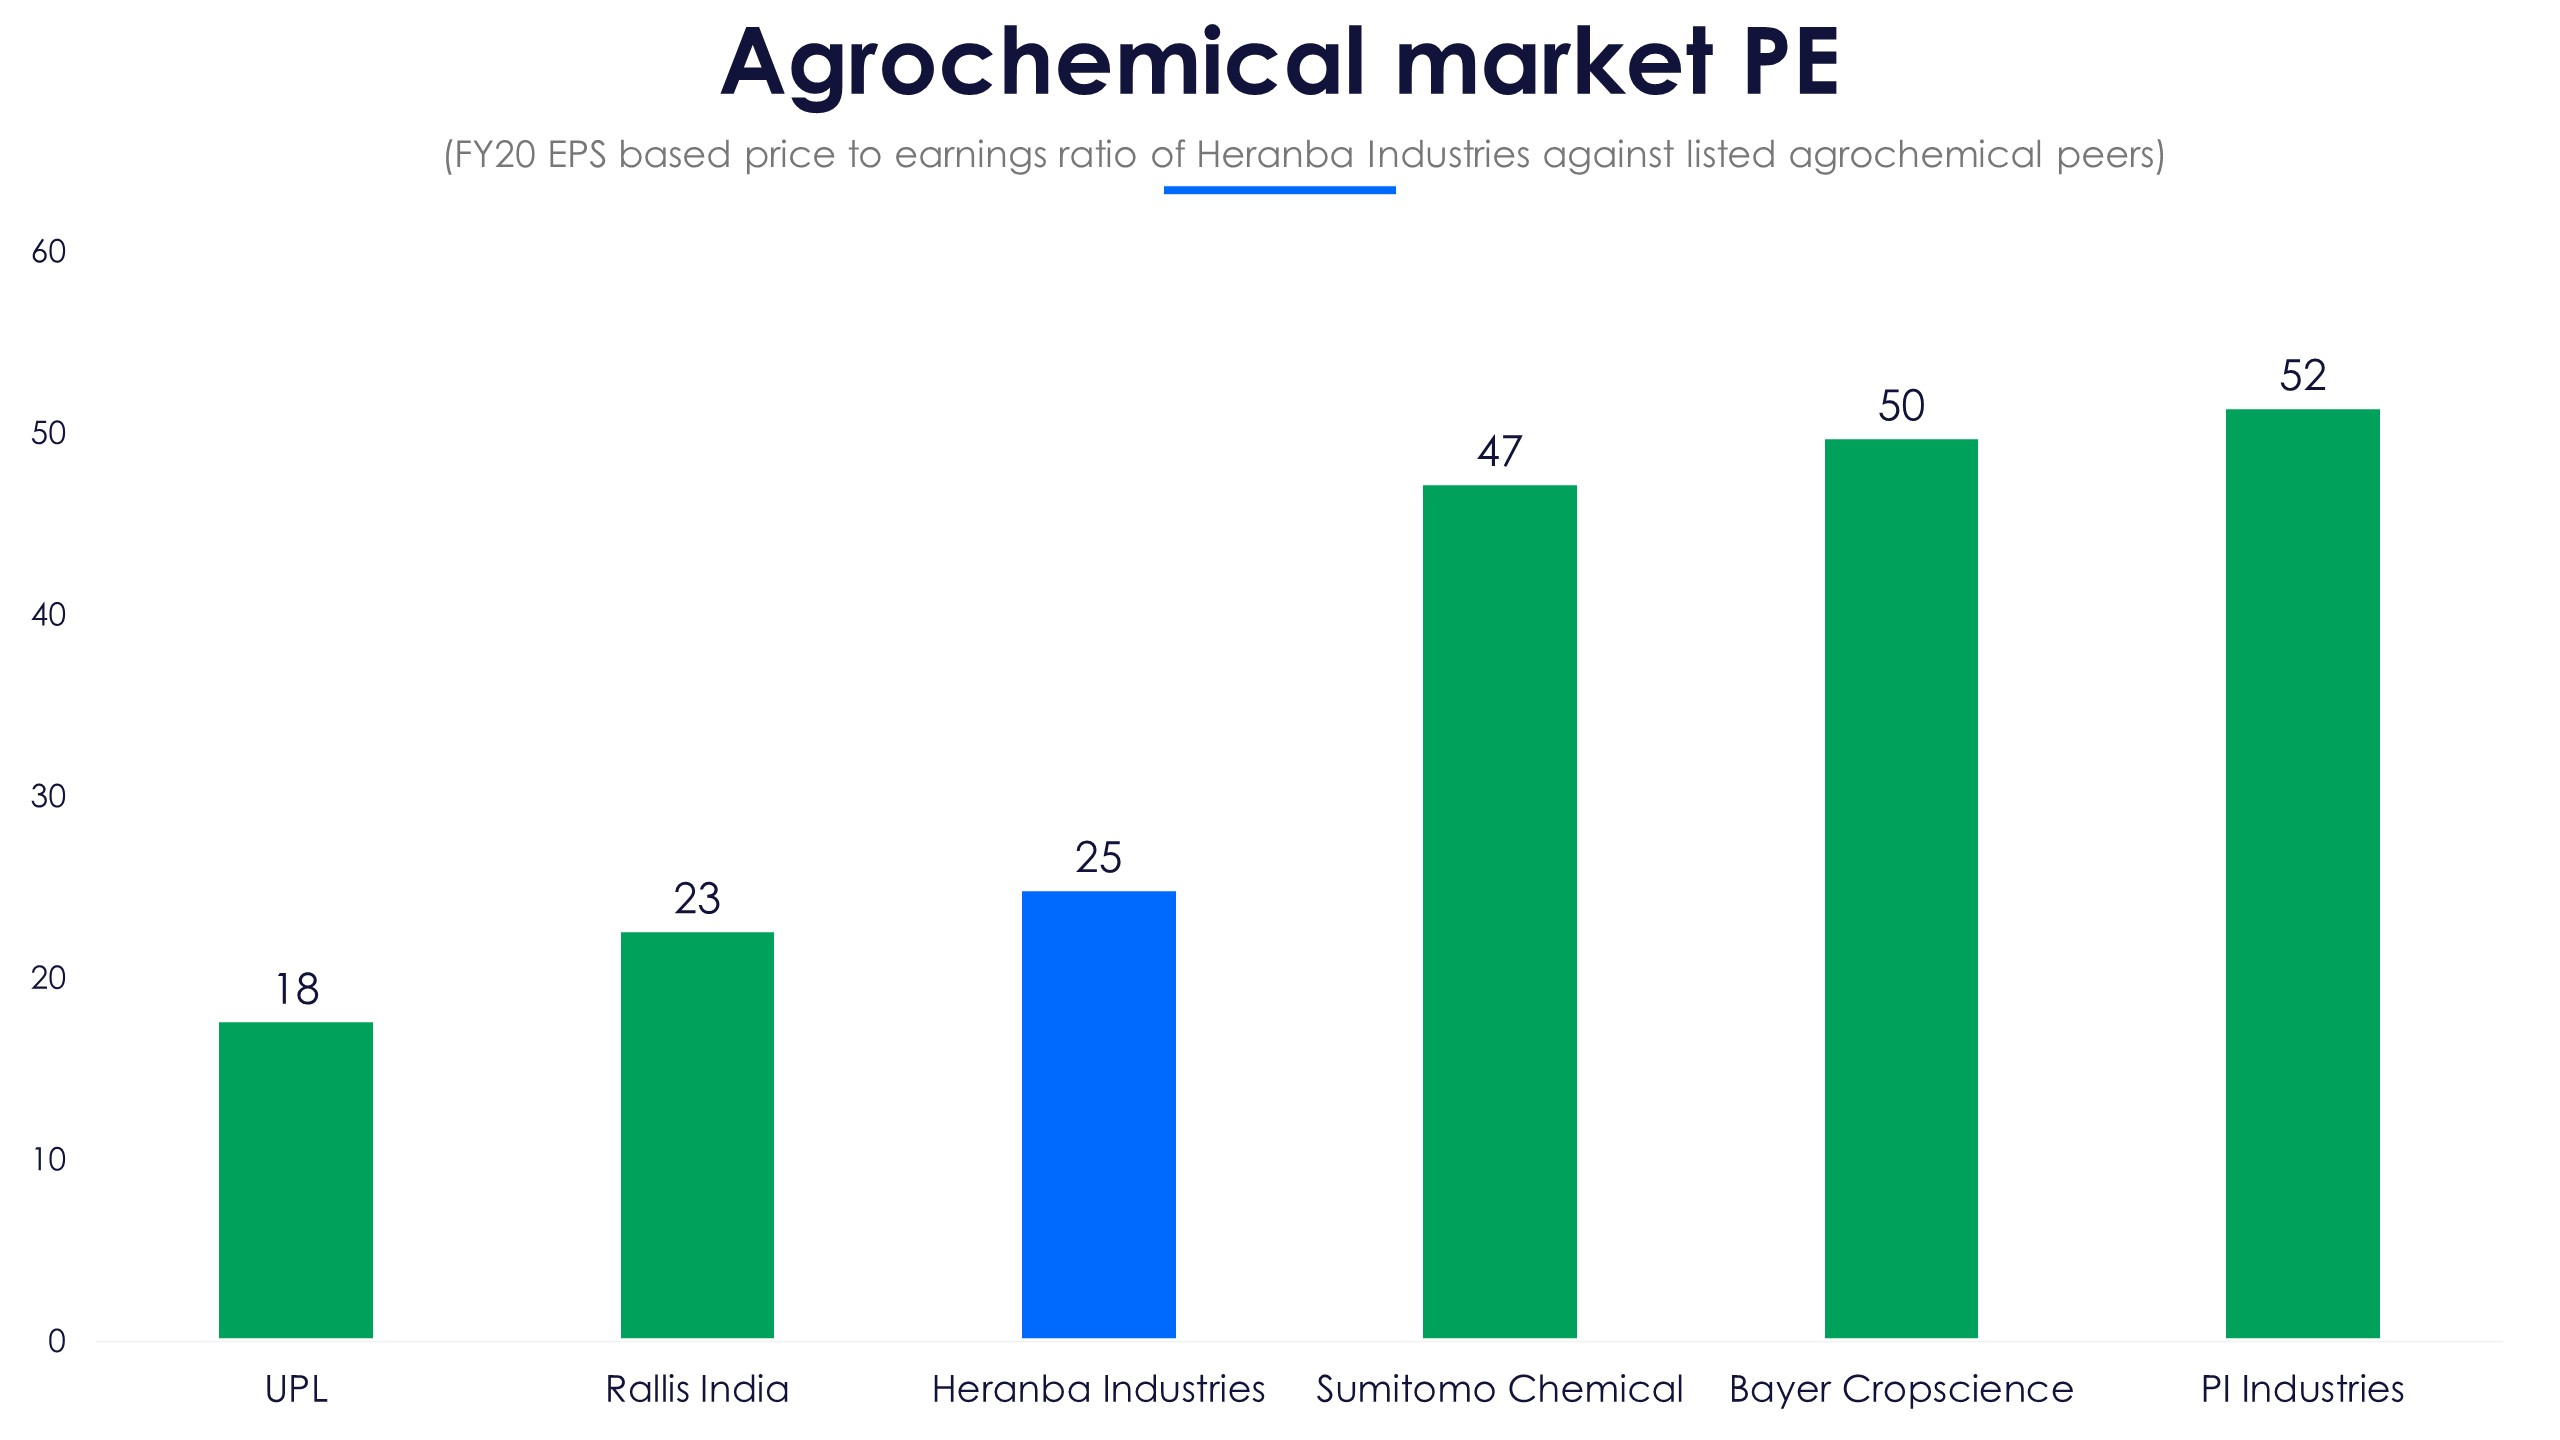 Agrochemical market PE